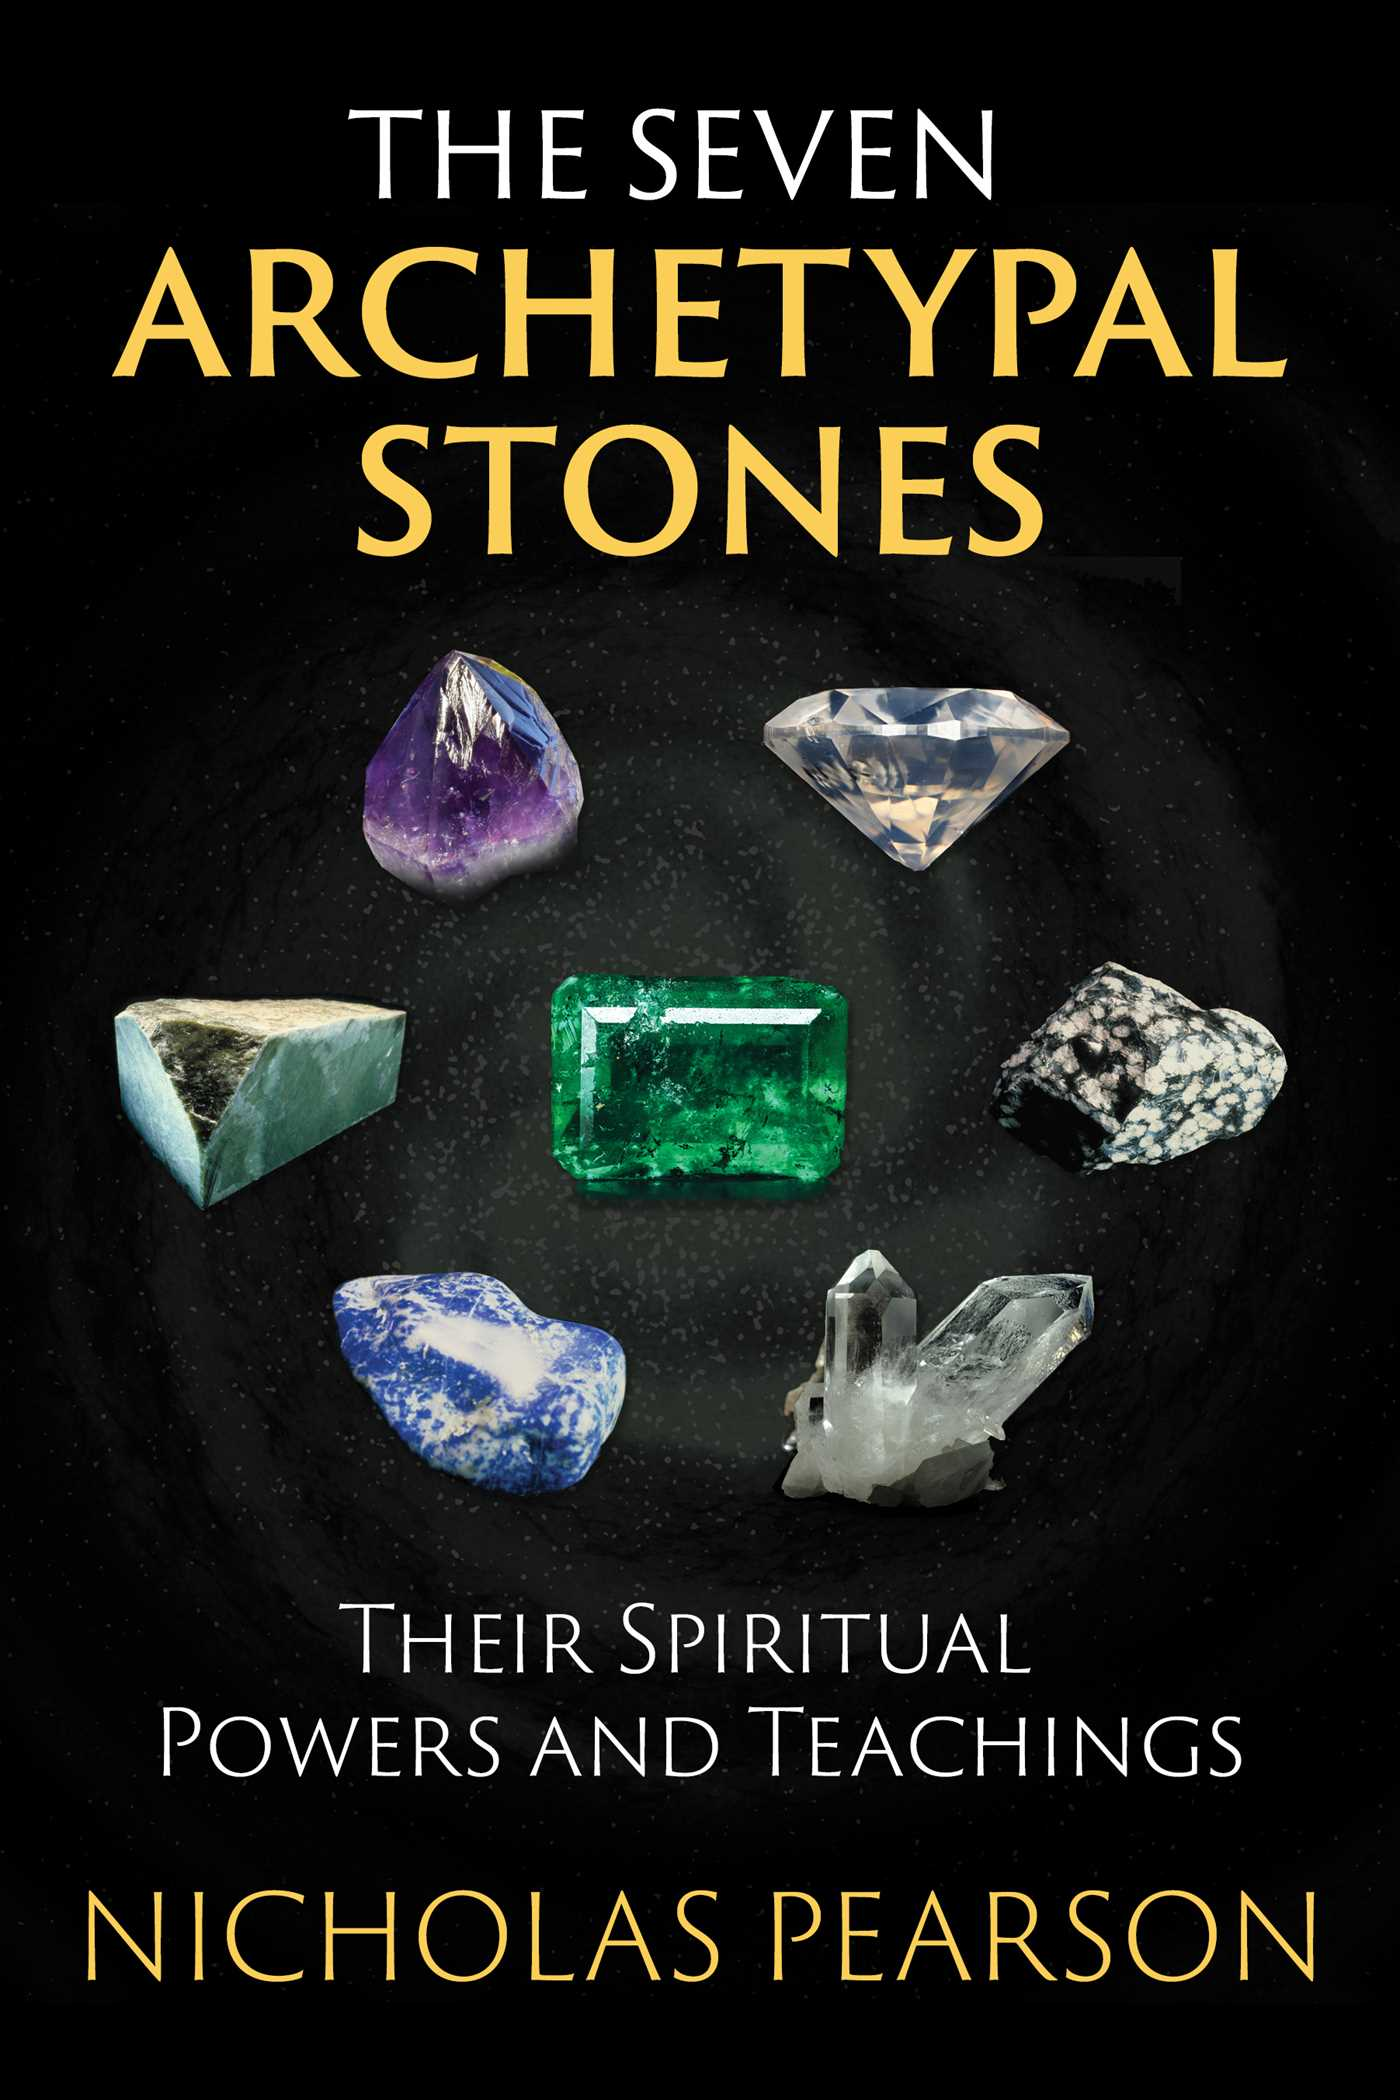 The Seven Archetypal Stones | Book by Nicholas Pearson | Official Publisher Page | Simon & Schuster